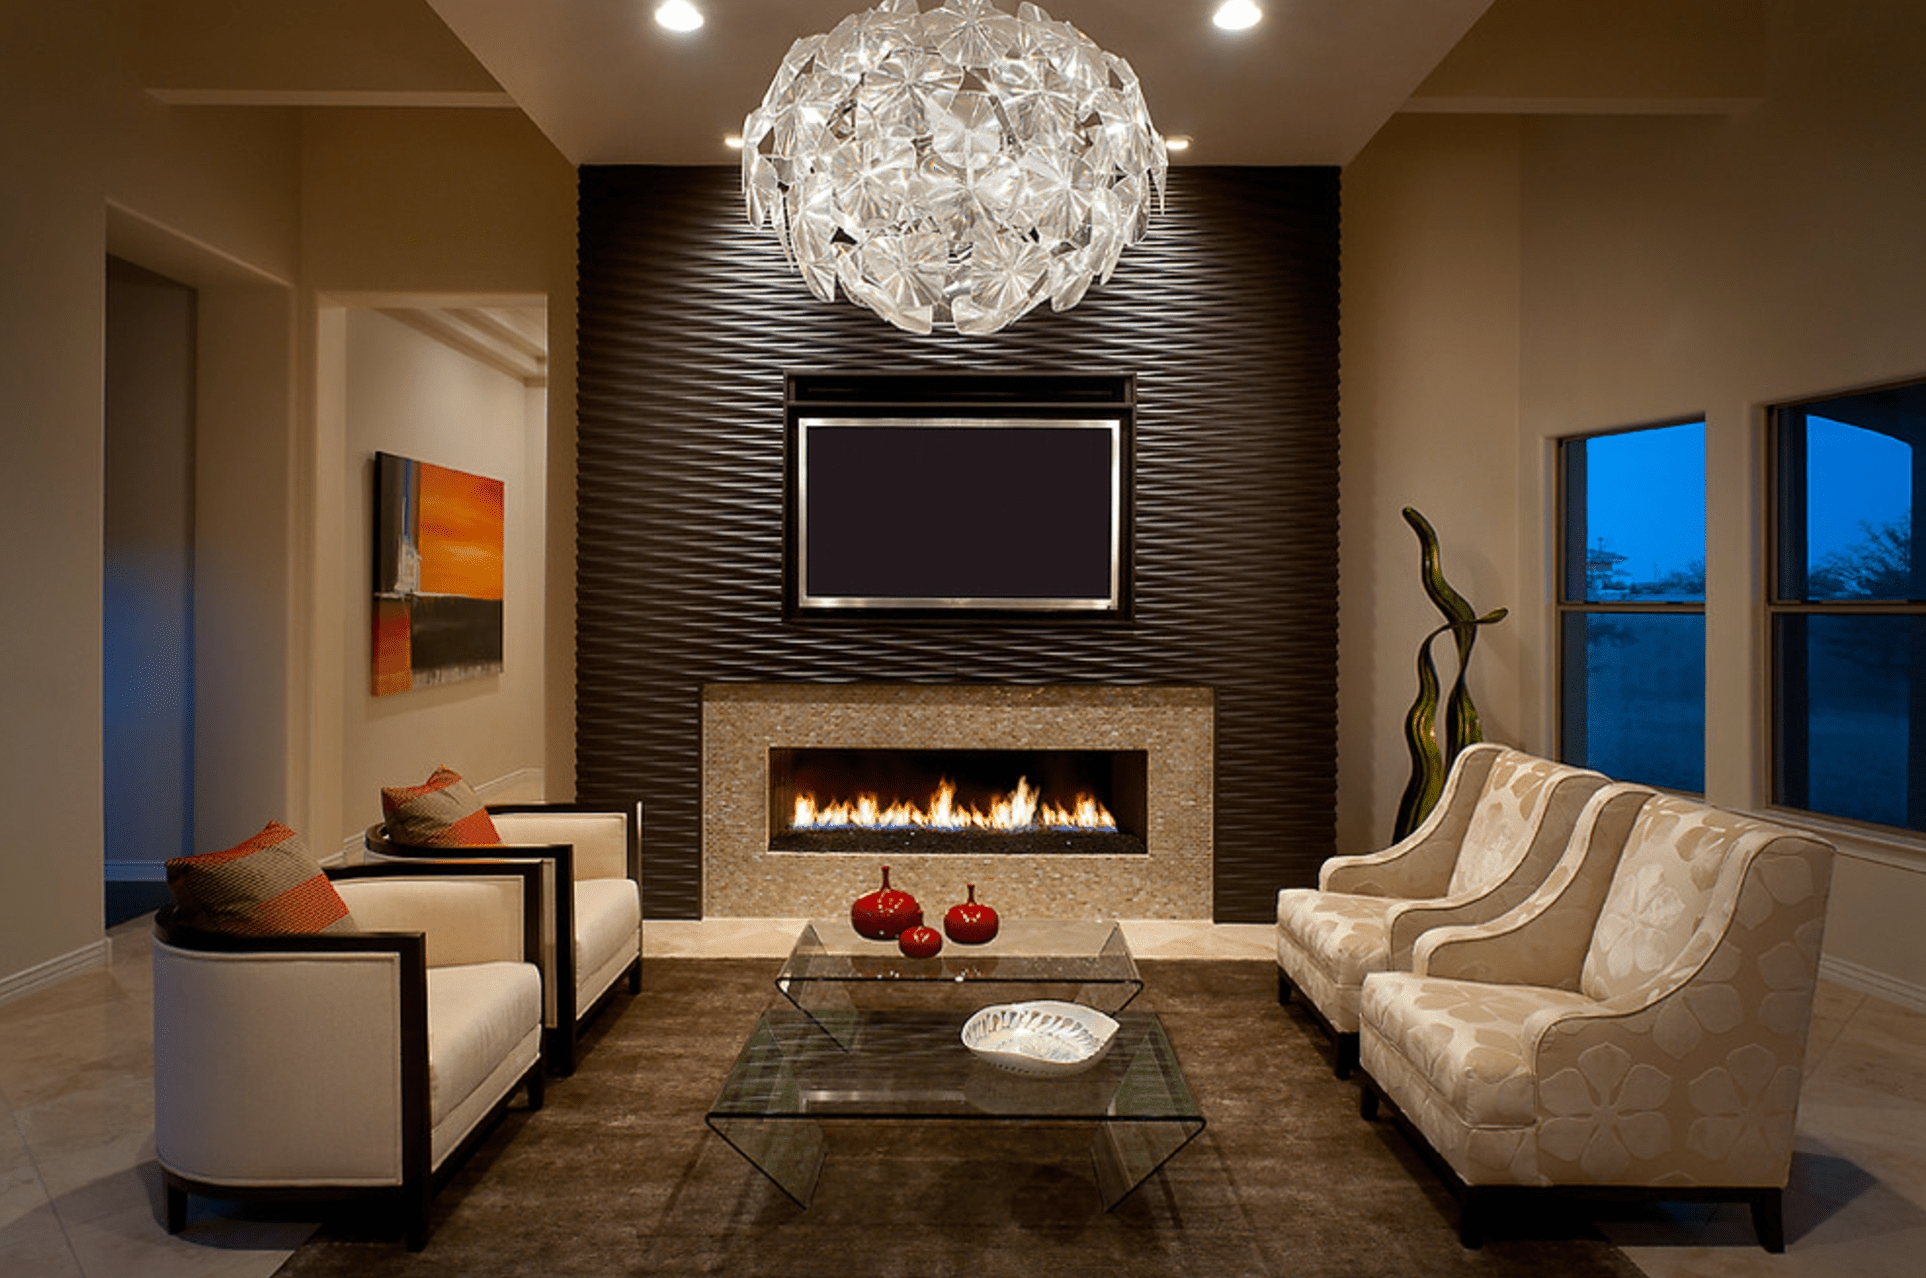 16 Living Rooms With Accent Walls Intended For Most Up To Date Wallpaper Living Room Wall Accents (View 1 of 15)